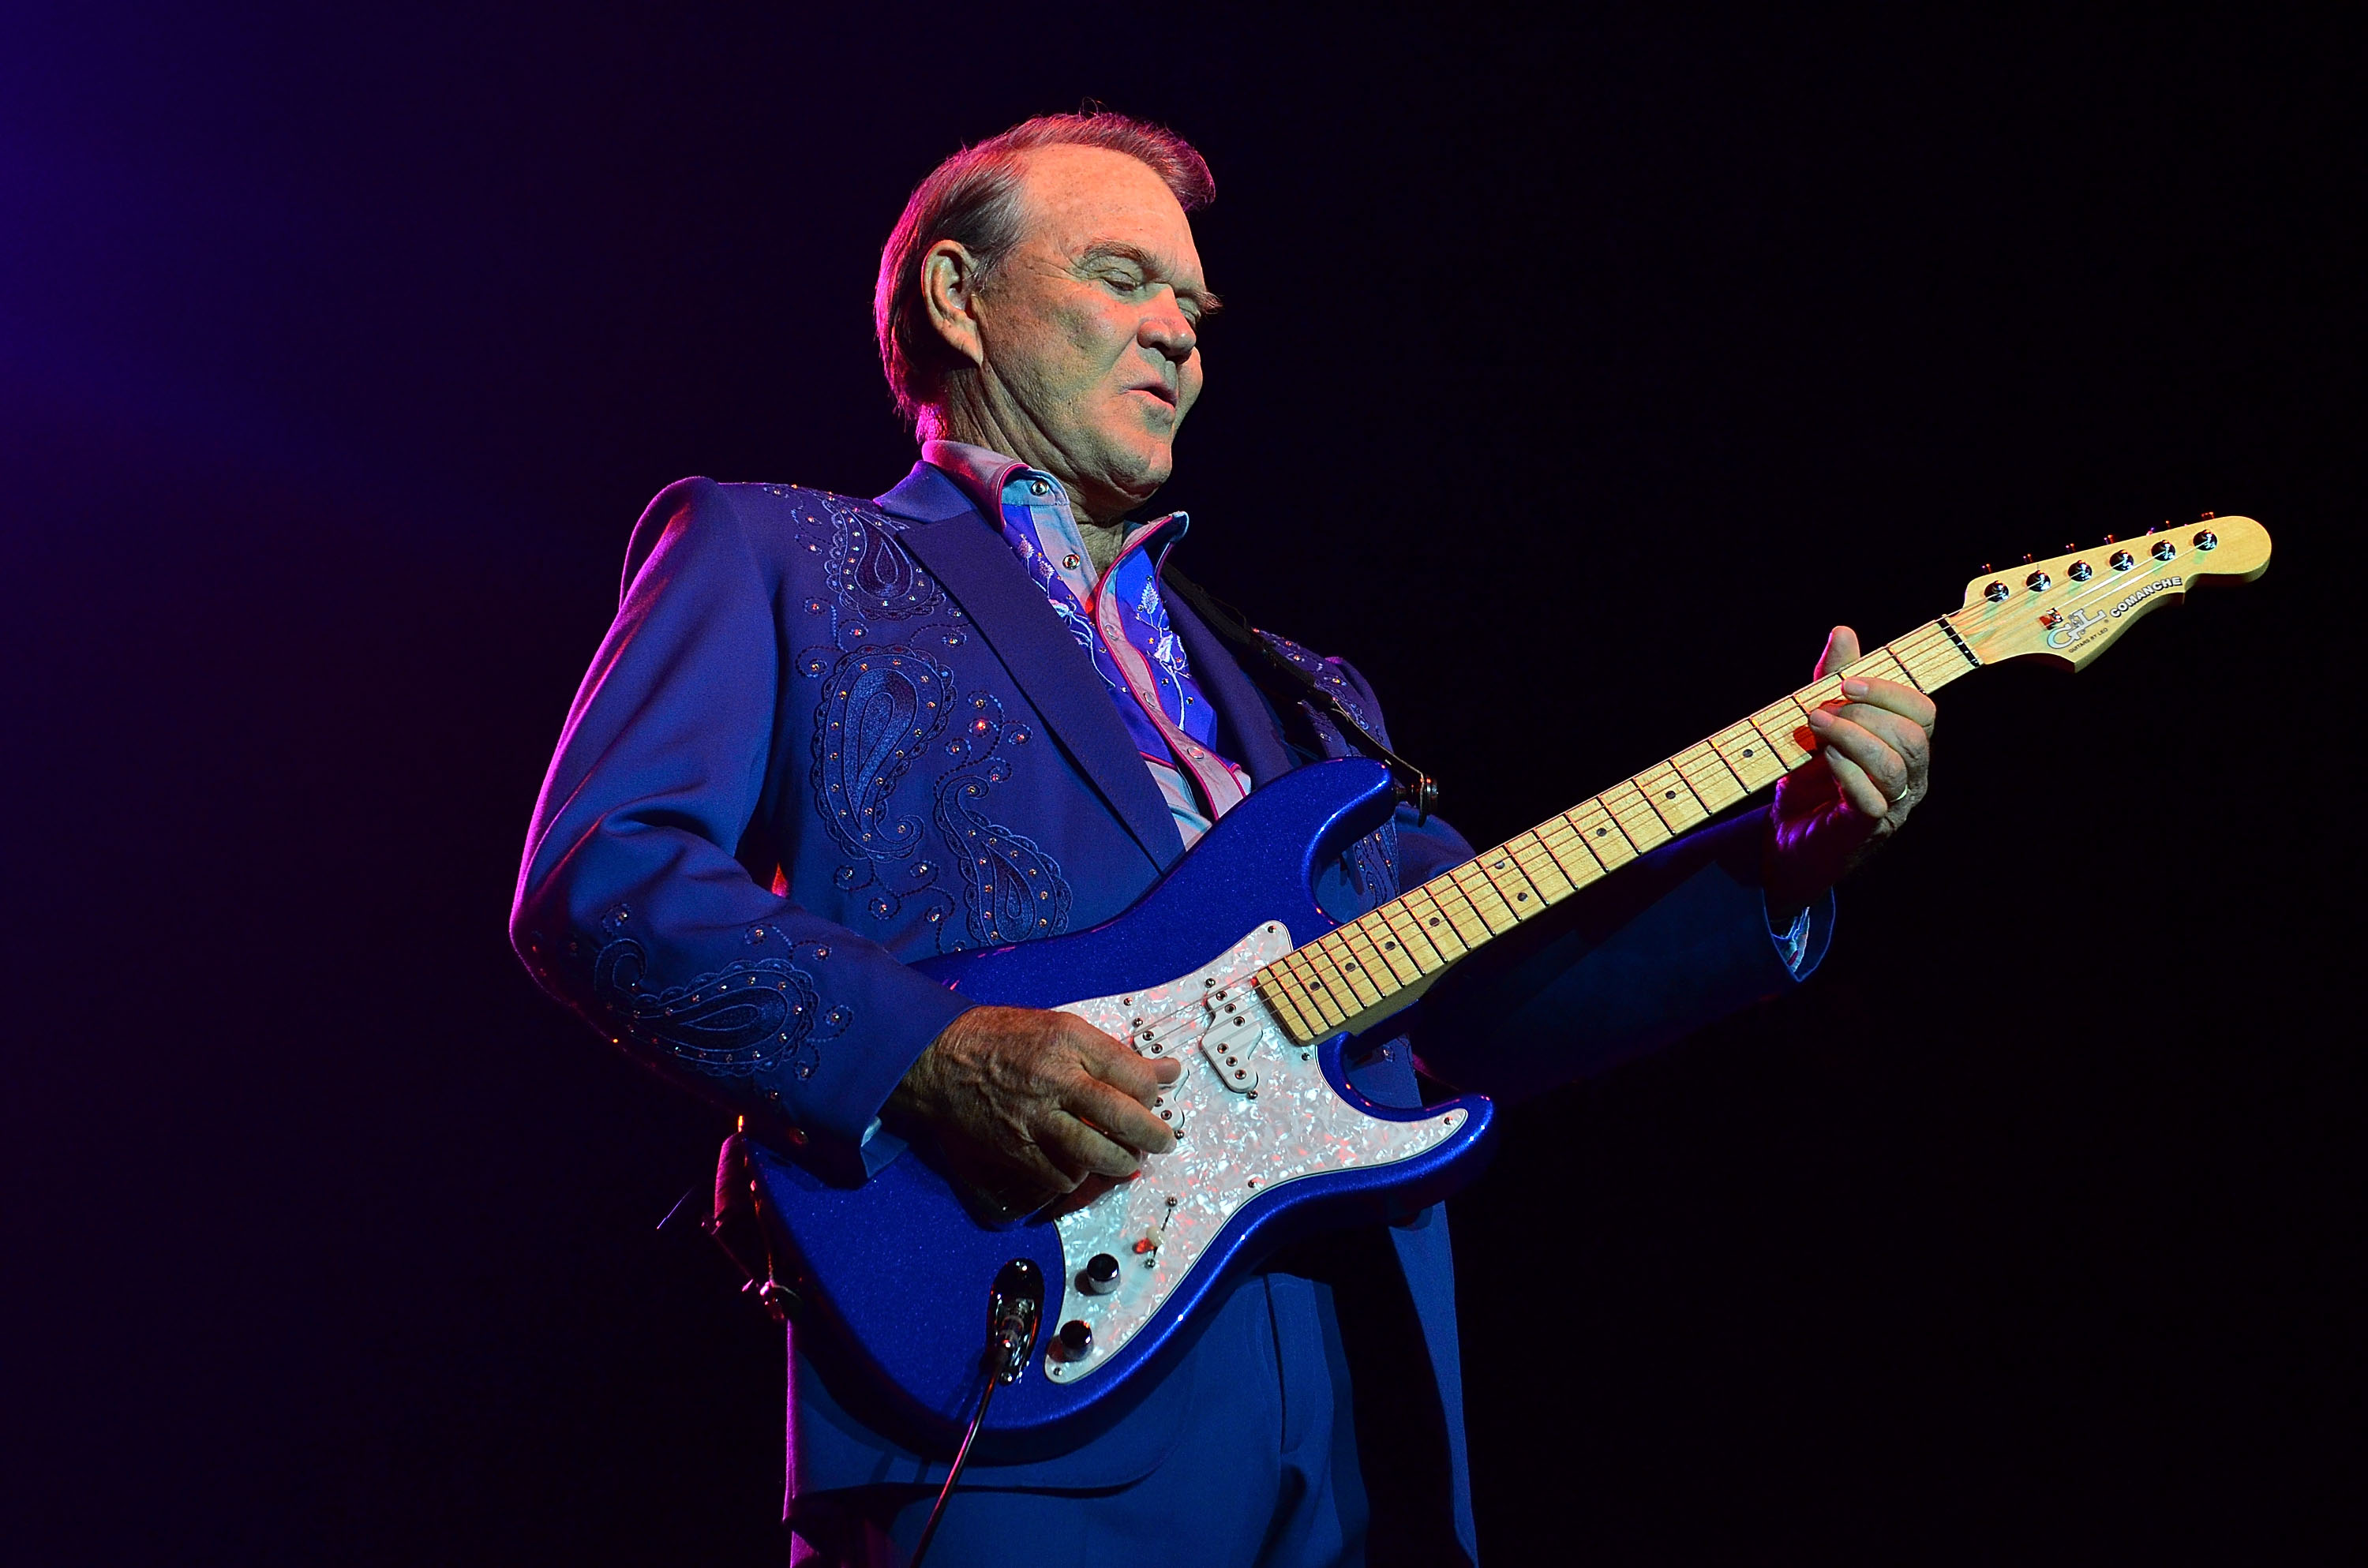 Glen Campbell's Final Song to Be Released This Month